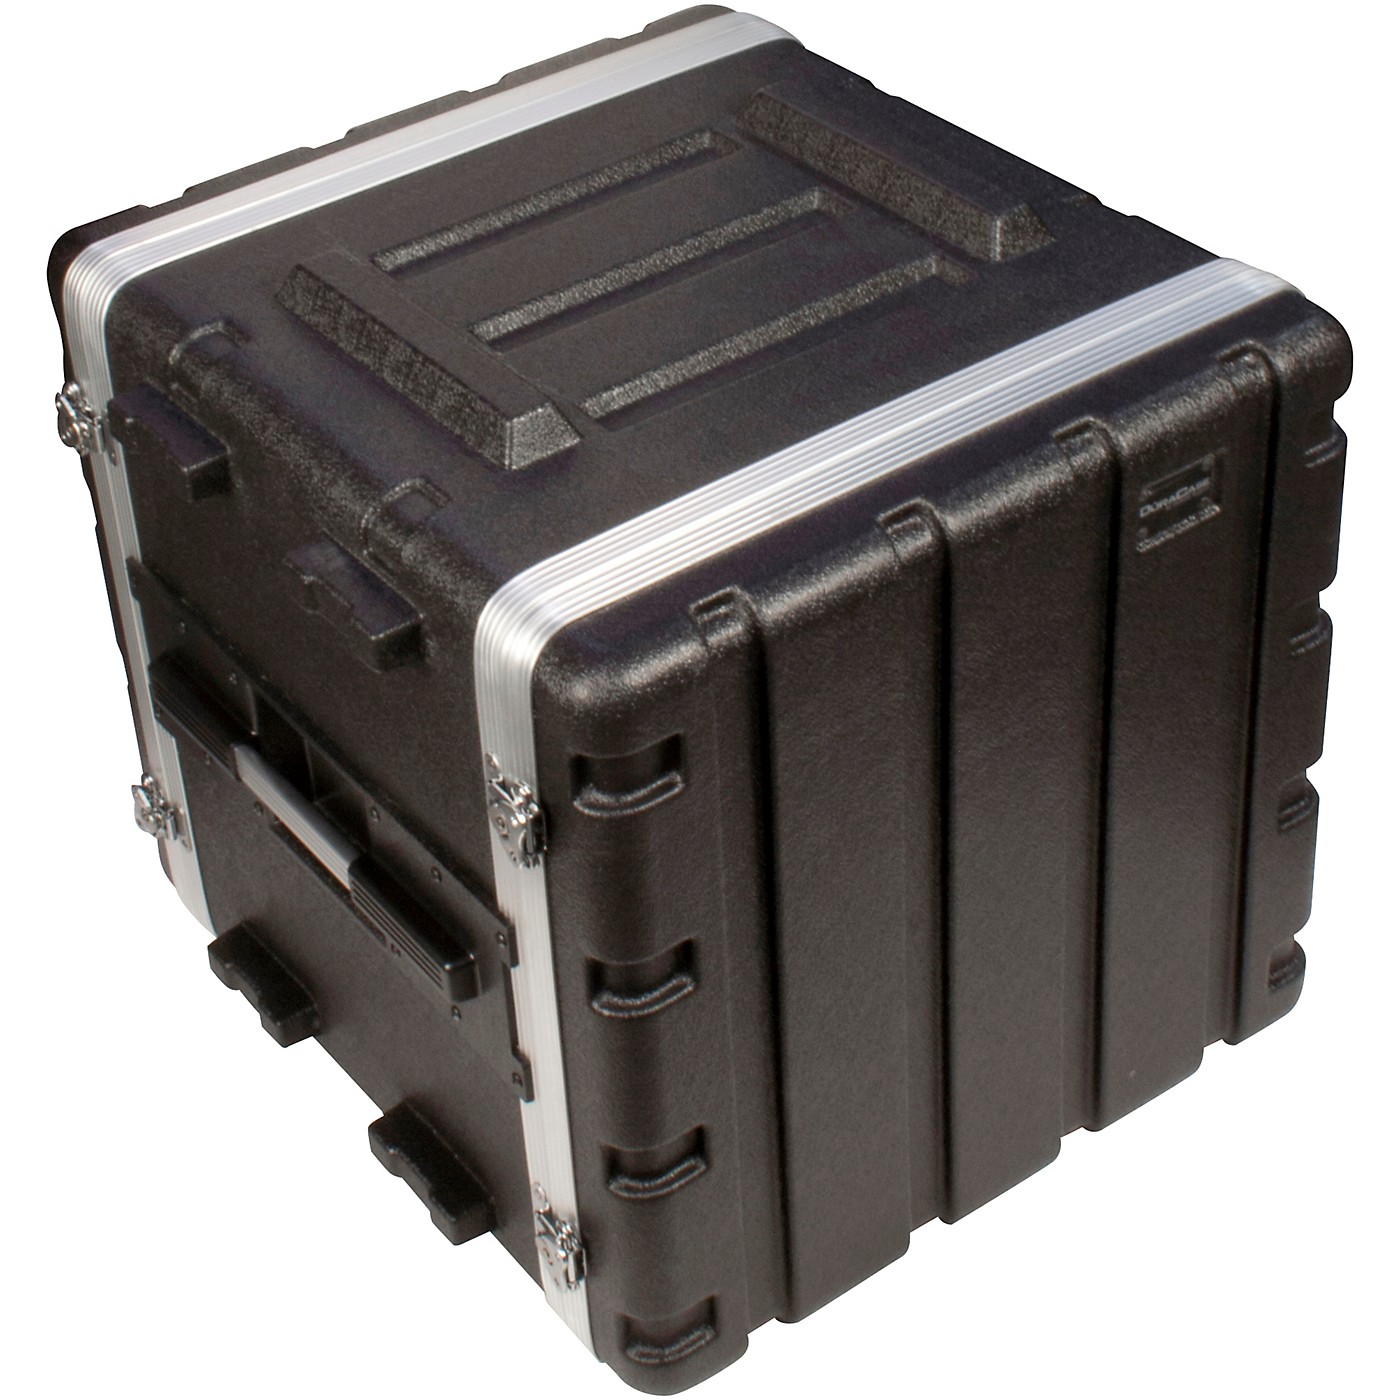 Ultimate Support DuraCase UR-10L Portable 10-Space Rackmount Case thumbnail